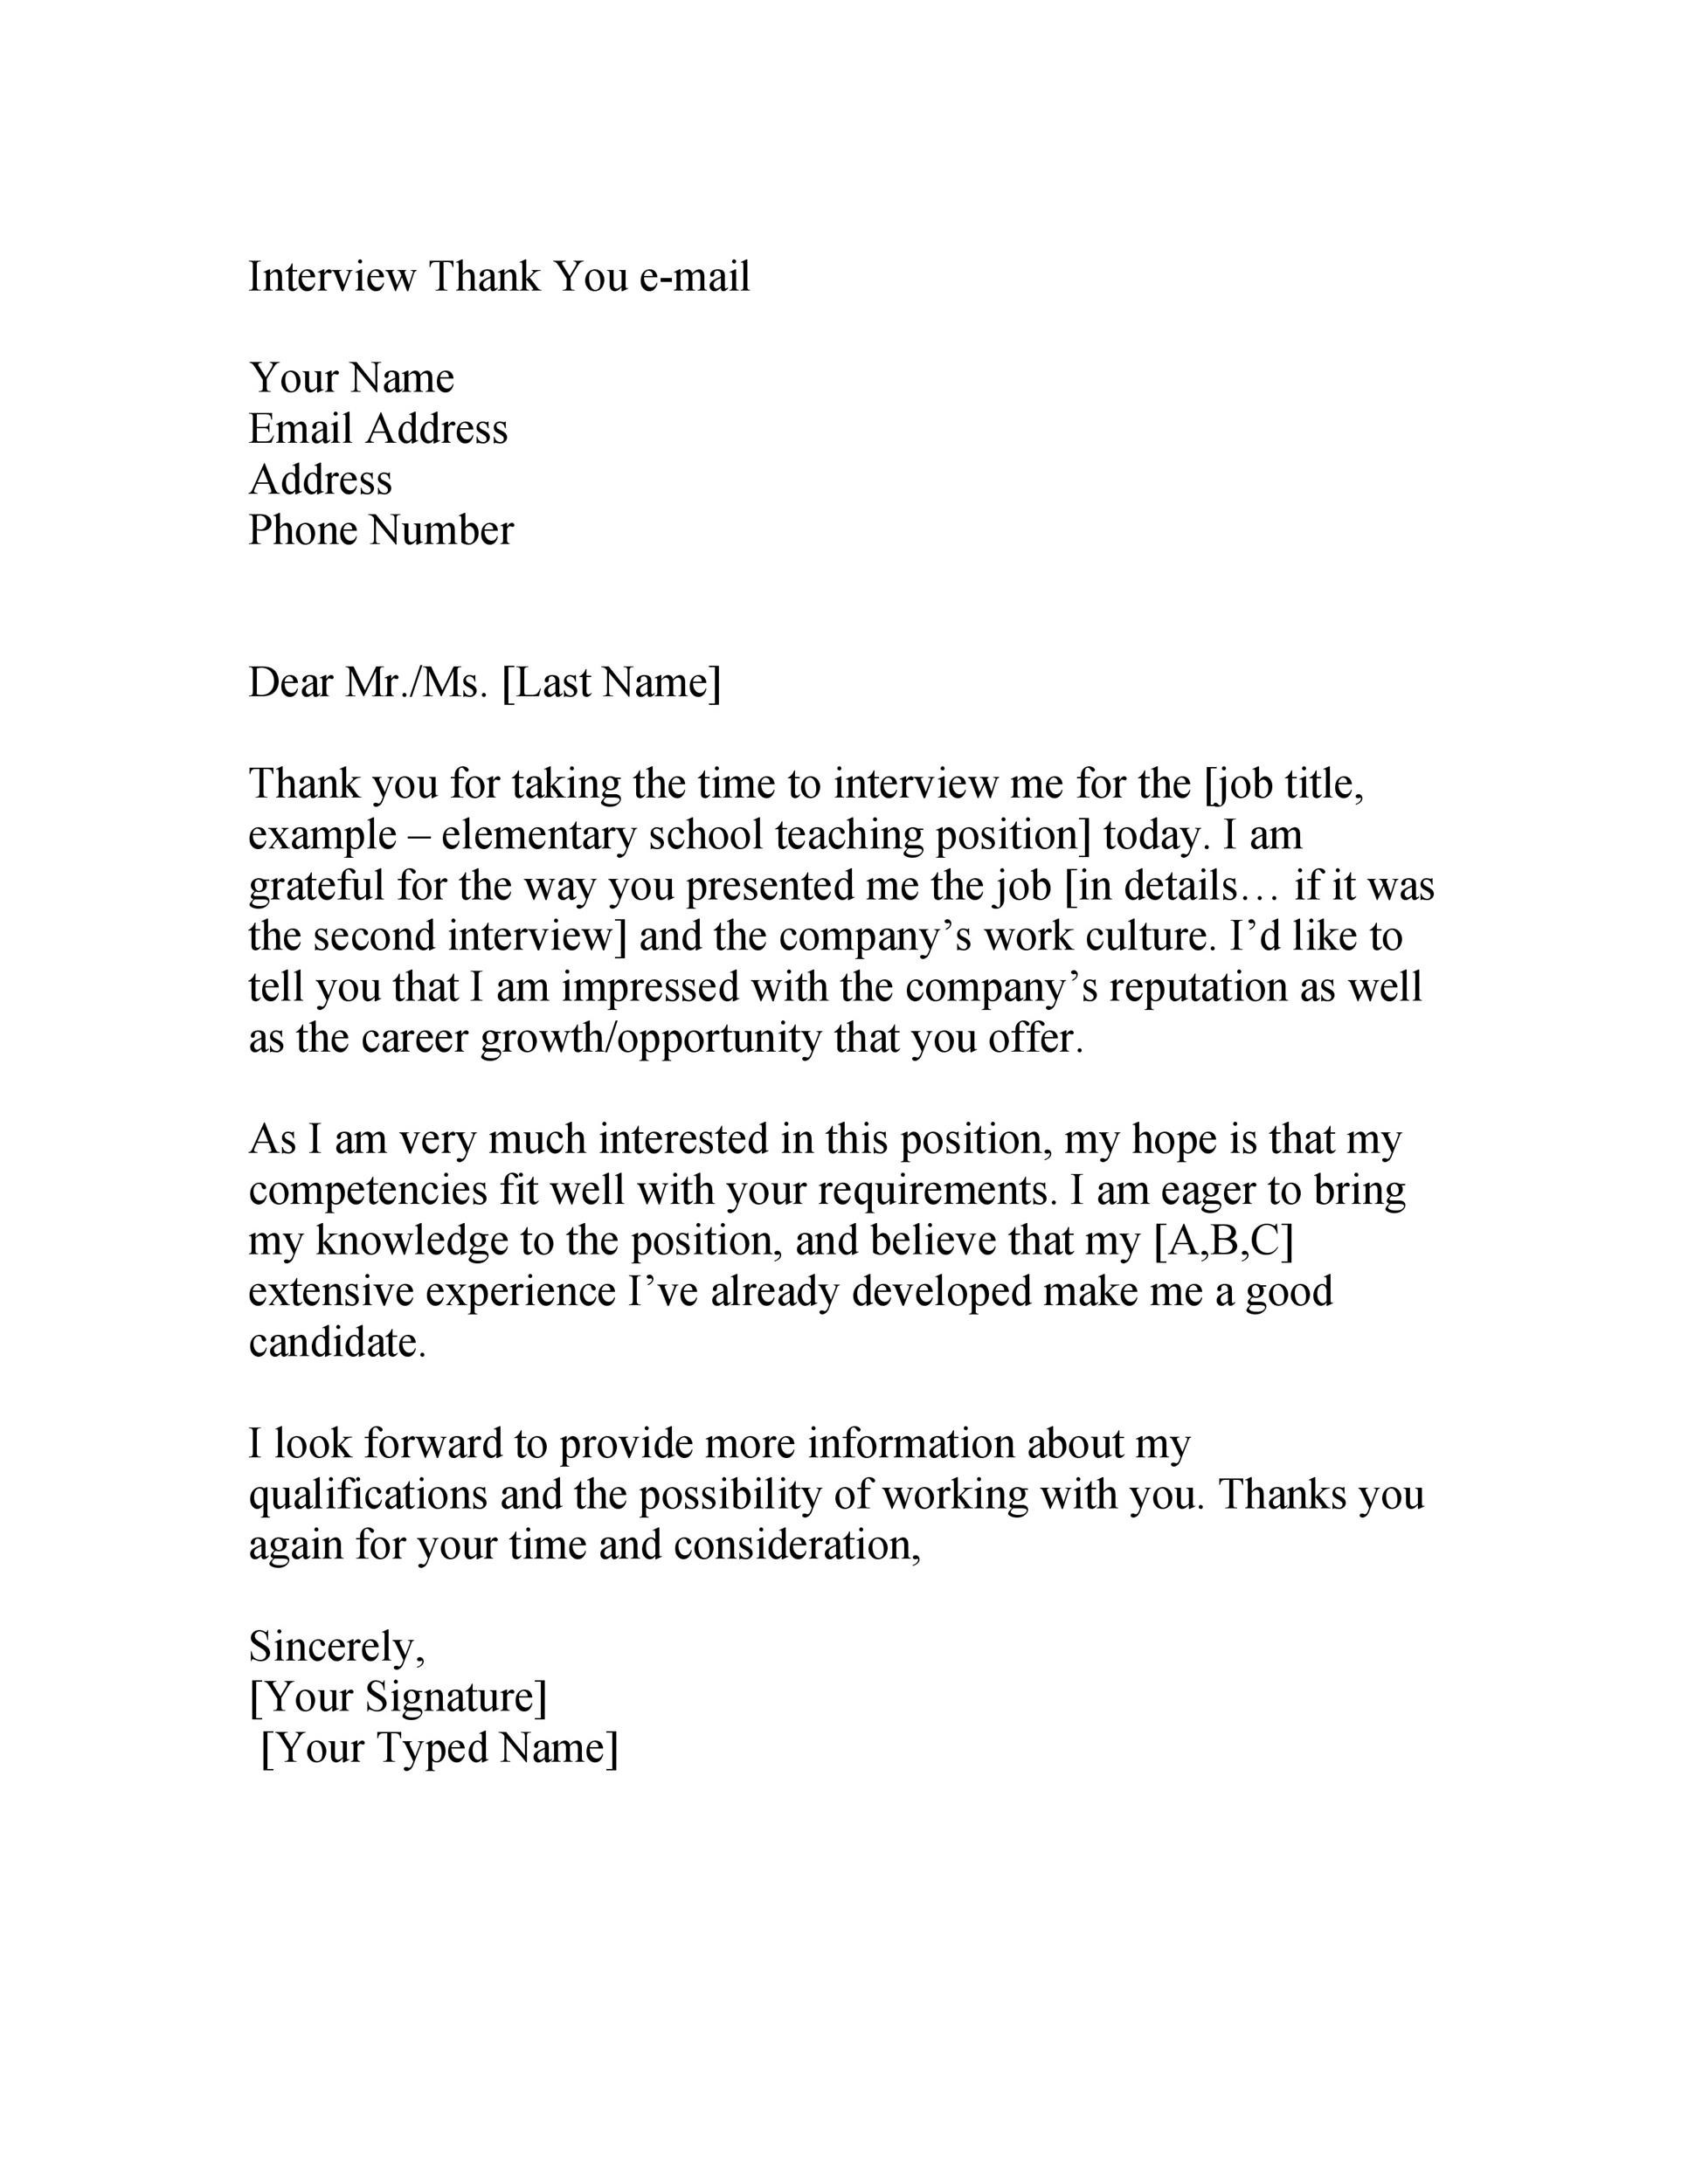 Promotion Interview Thank You Letter Sample from templatelab.com